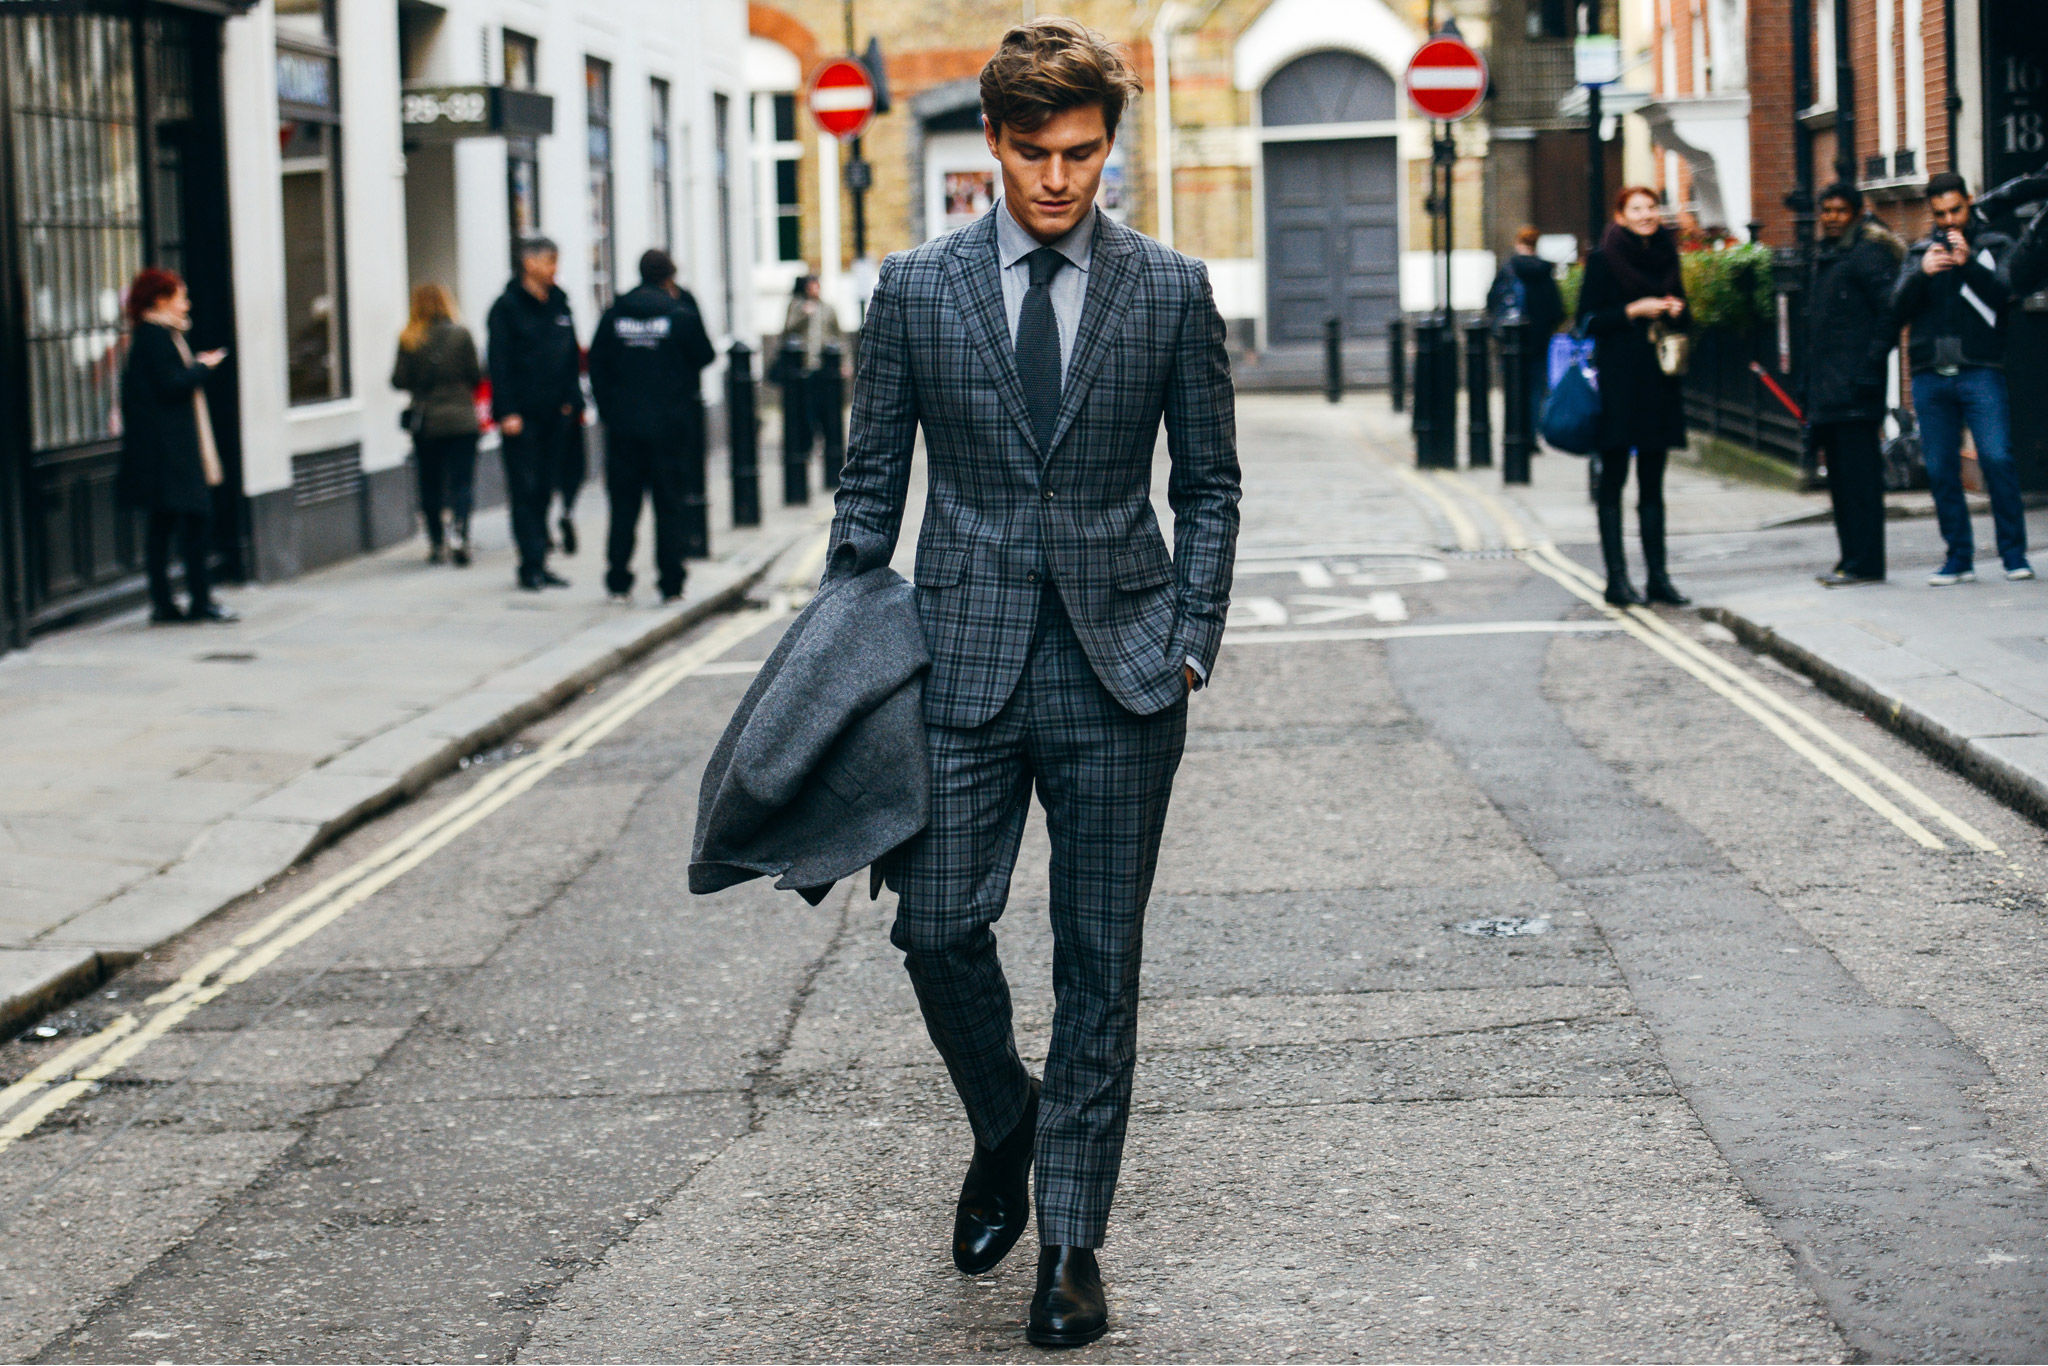 Classics of the English style in the male image